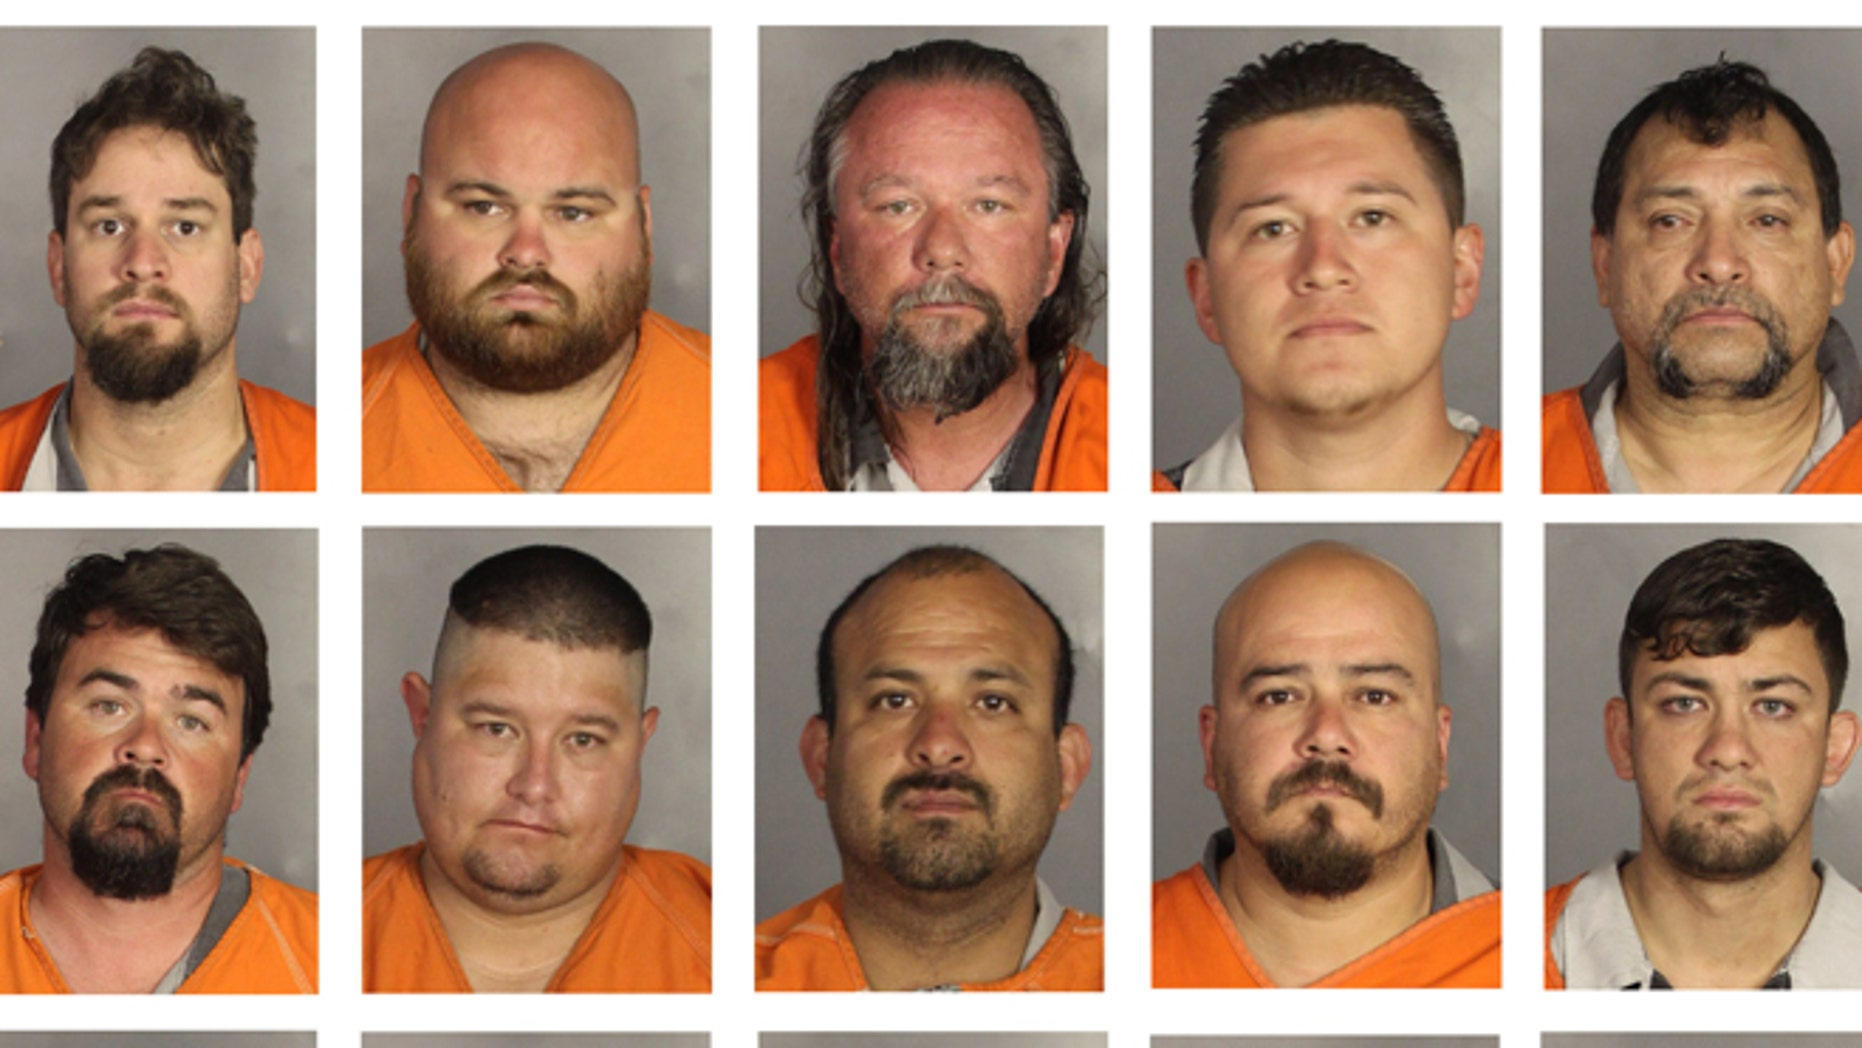 This combination of booking photos provided by the McLennan County Sheriff's office shows people arrested during the motorcycle gang related shooting at the Twin Peaks restaurant in Waco, Texas, Sunday, May 17, 2015. Top row from left to right: William English, Nate Farish, Don Fowler, Justin Garcia and Lawrence Garcia. Bottom row, left to right: Lance Geneva, Nathan Grindstaff, Valdemar Guajardo, John Guerrero and Bryan Harper. (McLennan County Sheriff's Office via AP)